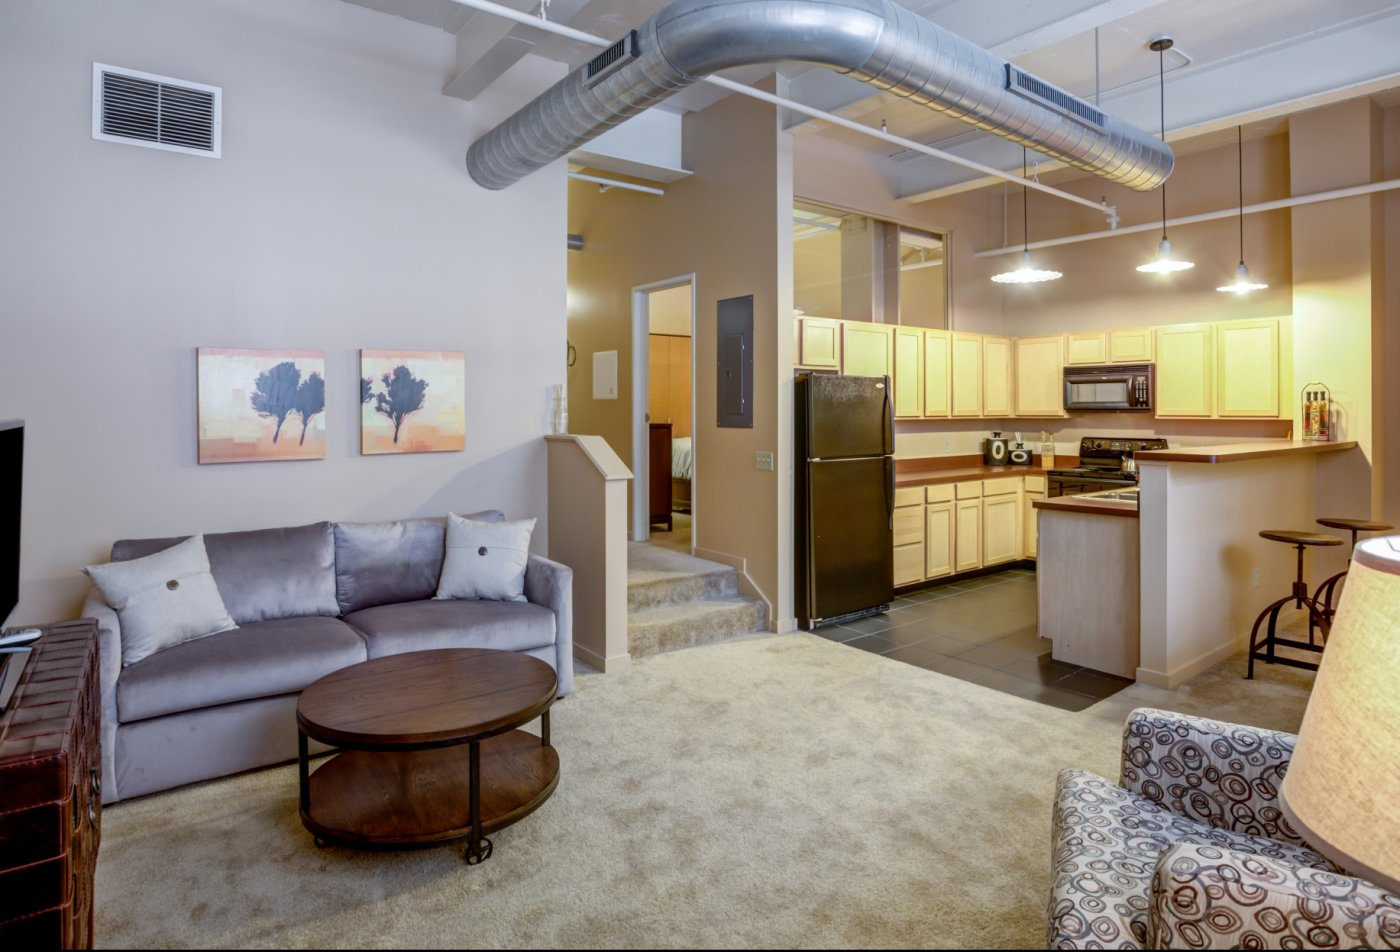 Welcome to heinz lofts strip district apartments in pittsburgh for 1 bedroom apartments in pittsburgh pa